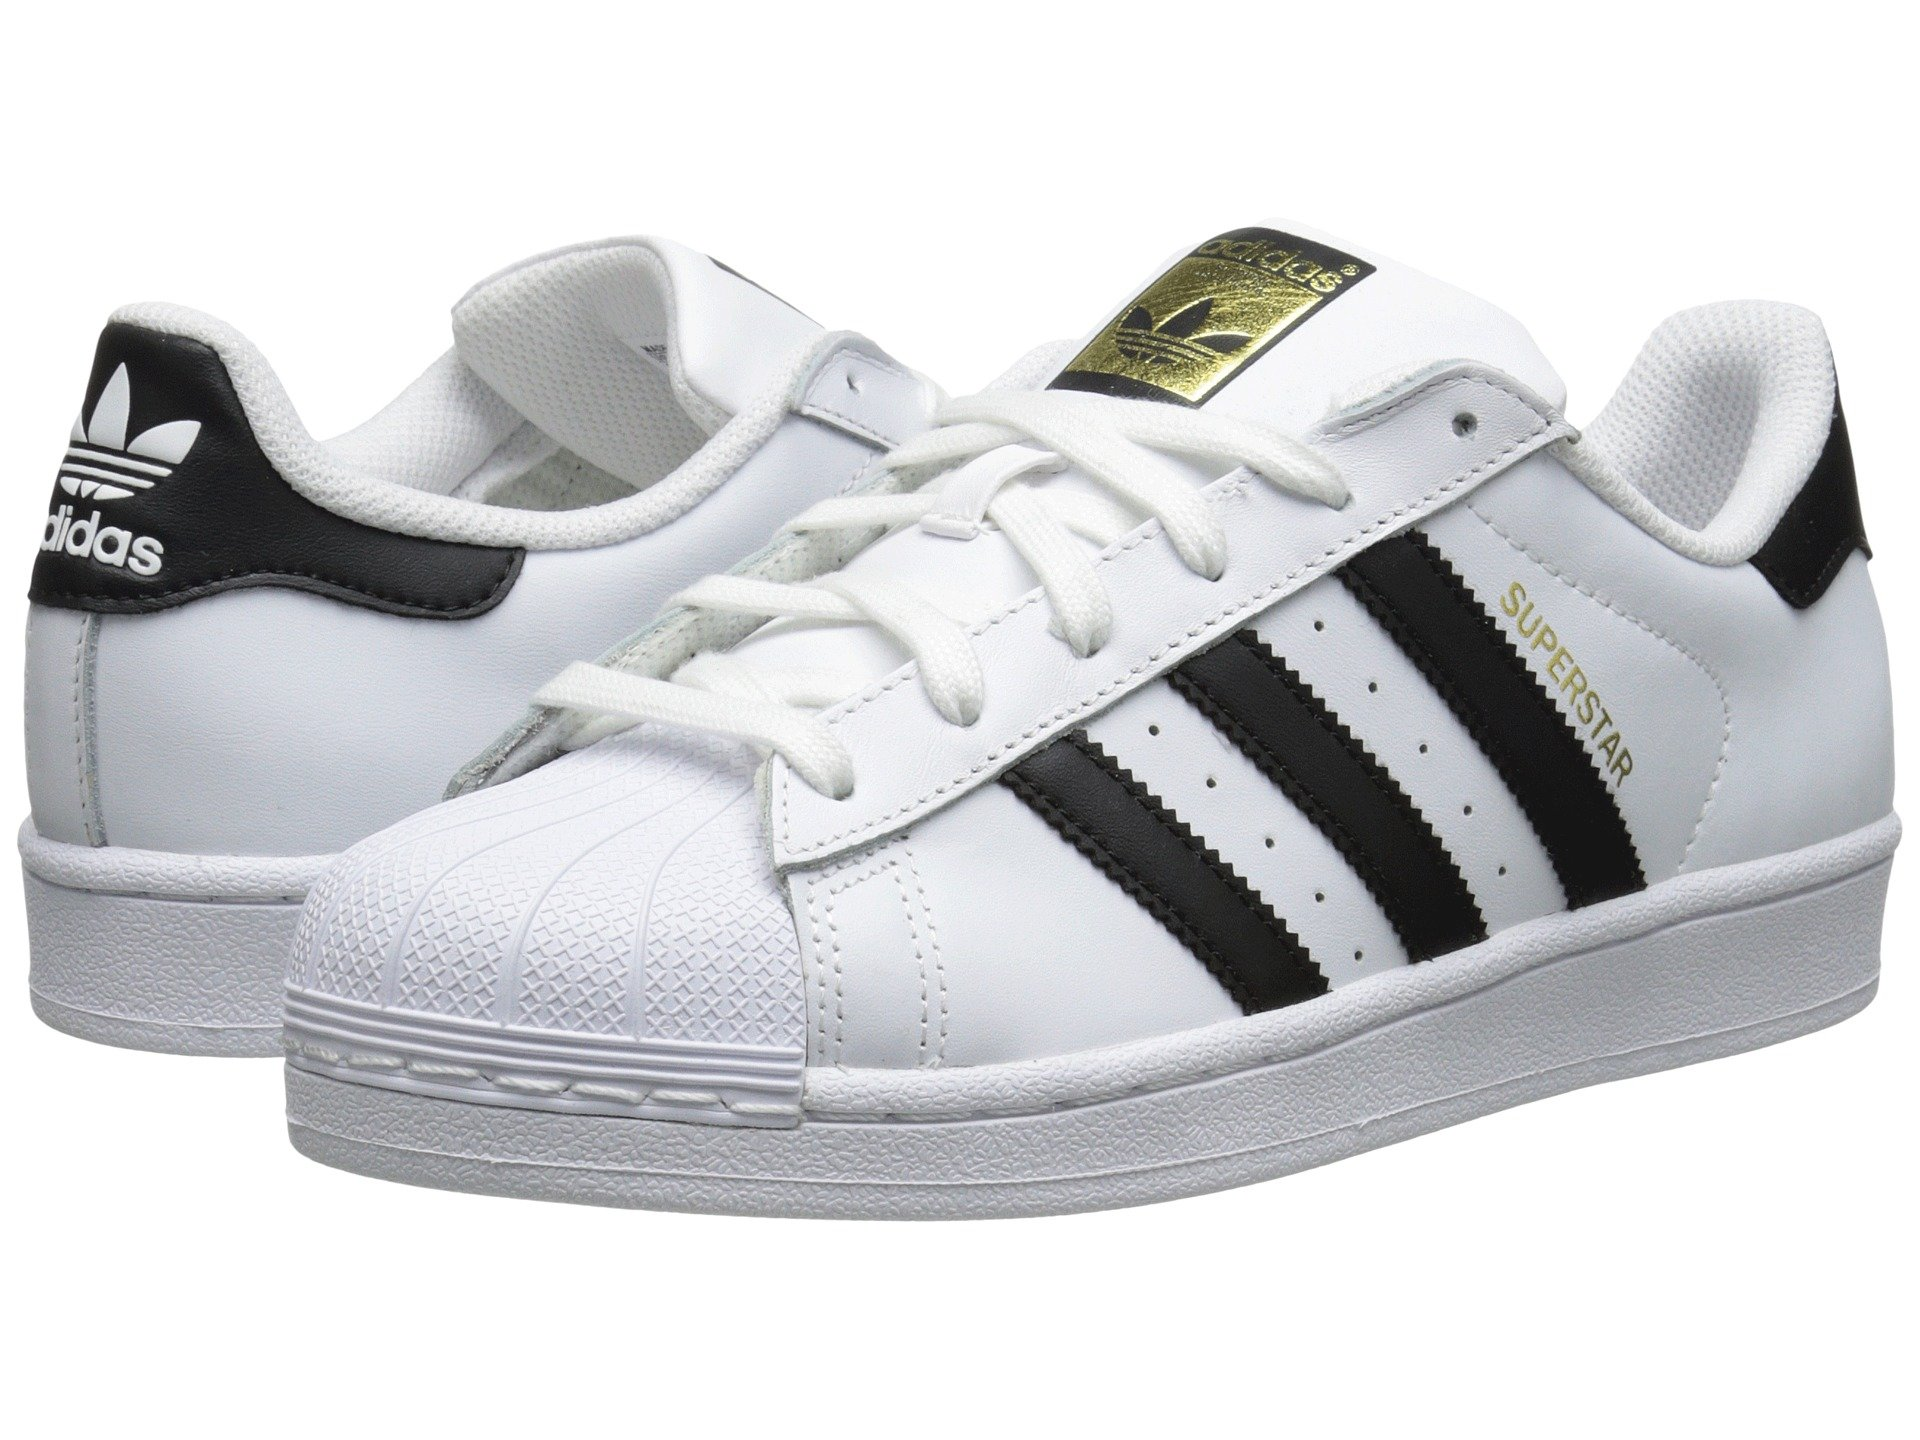 adidas Originals Superstar W at Zappos.com